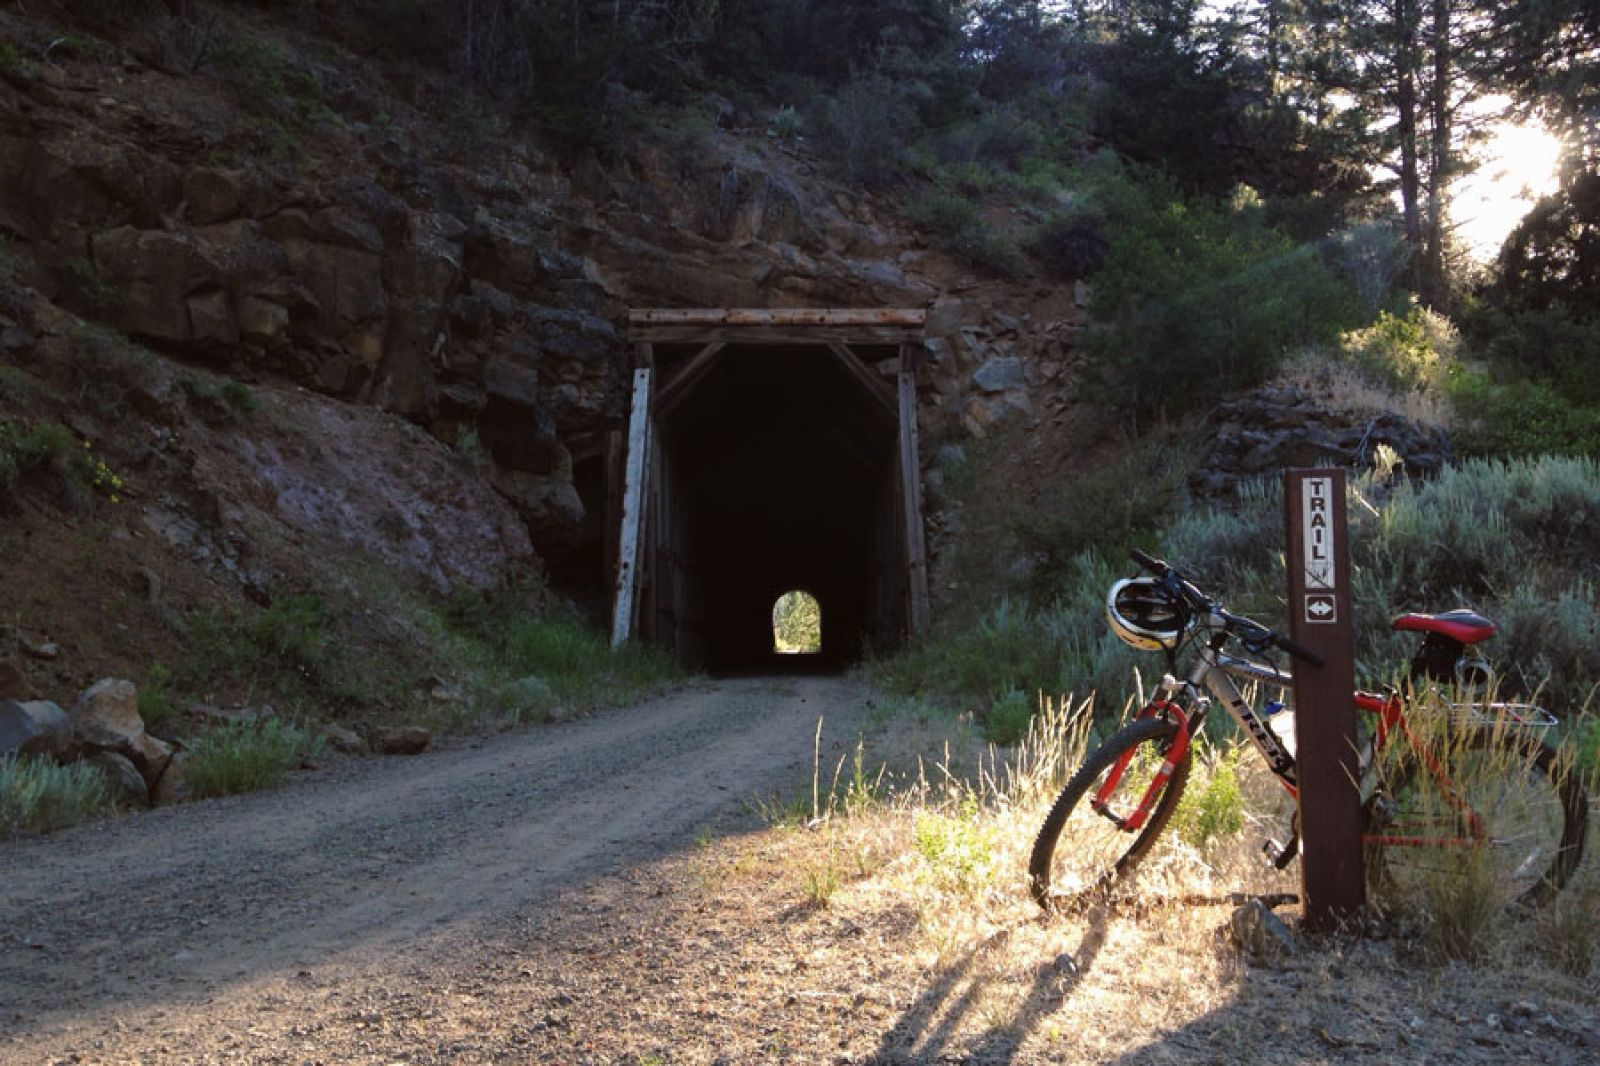 photo: Tunnel on the Bizz Johnson Trail, near Susanville, CA; photo by Dana Buzzelli, International Youth Leadership Foundation